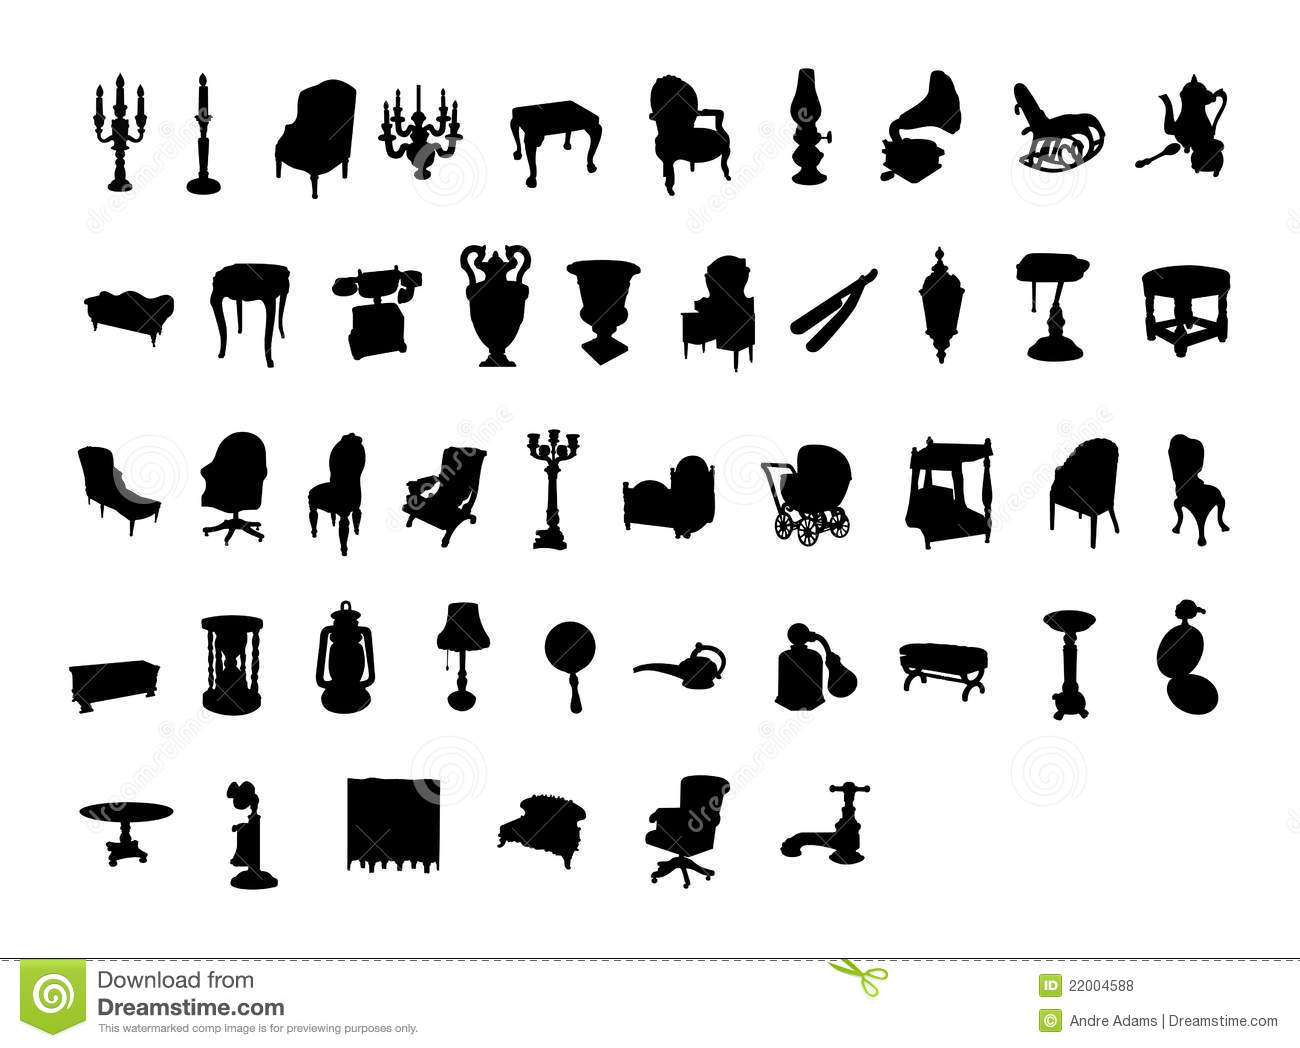 Victorian Antique Silhouette Items Royalty Free Stock Photos Image 22004588